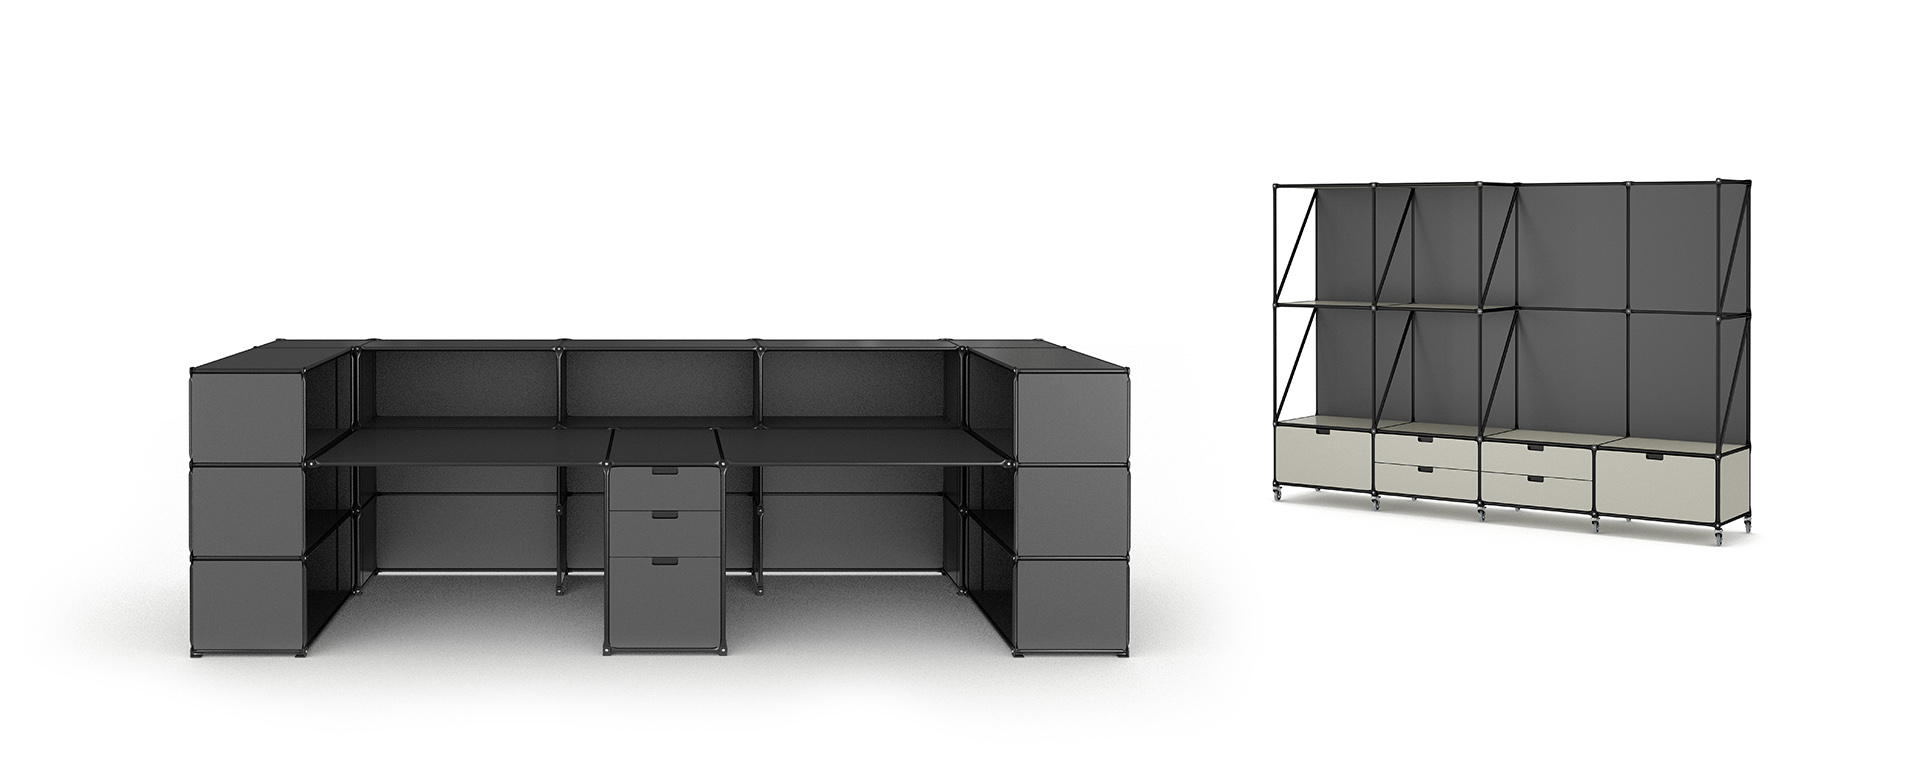 Exquisit Lowboard Ecklösung Sammlung Von Our Modular Furniture System